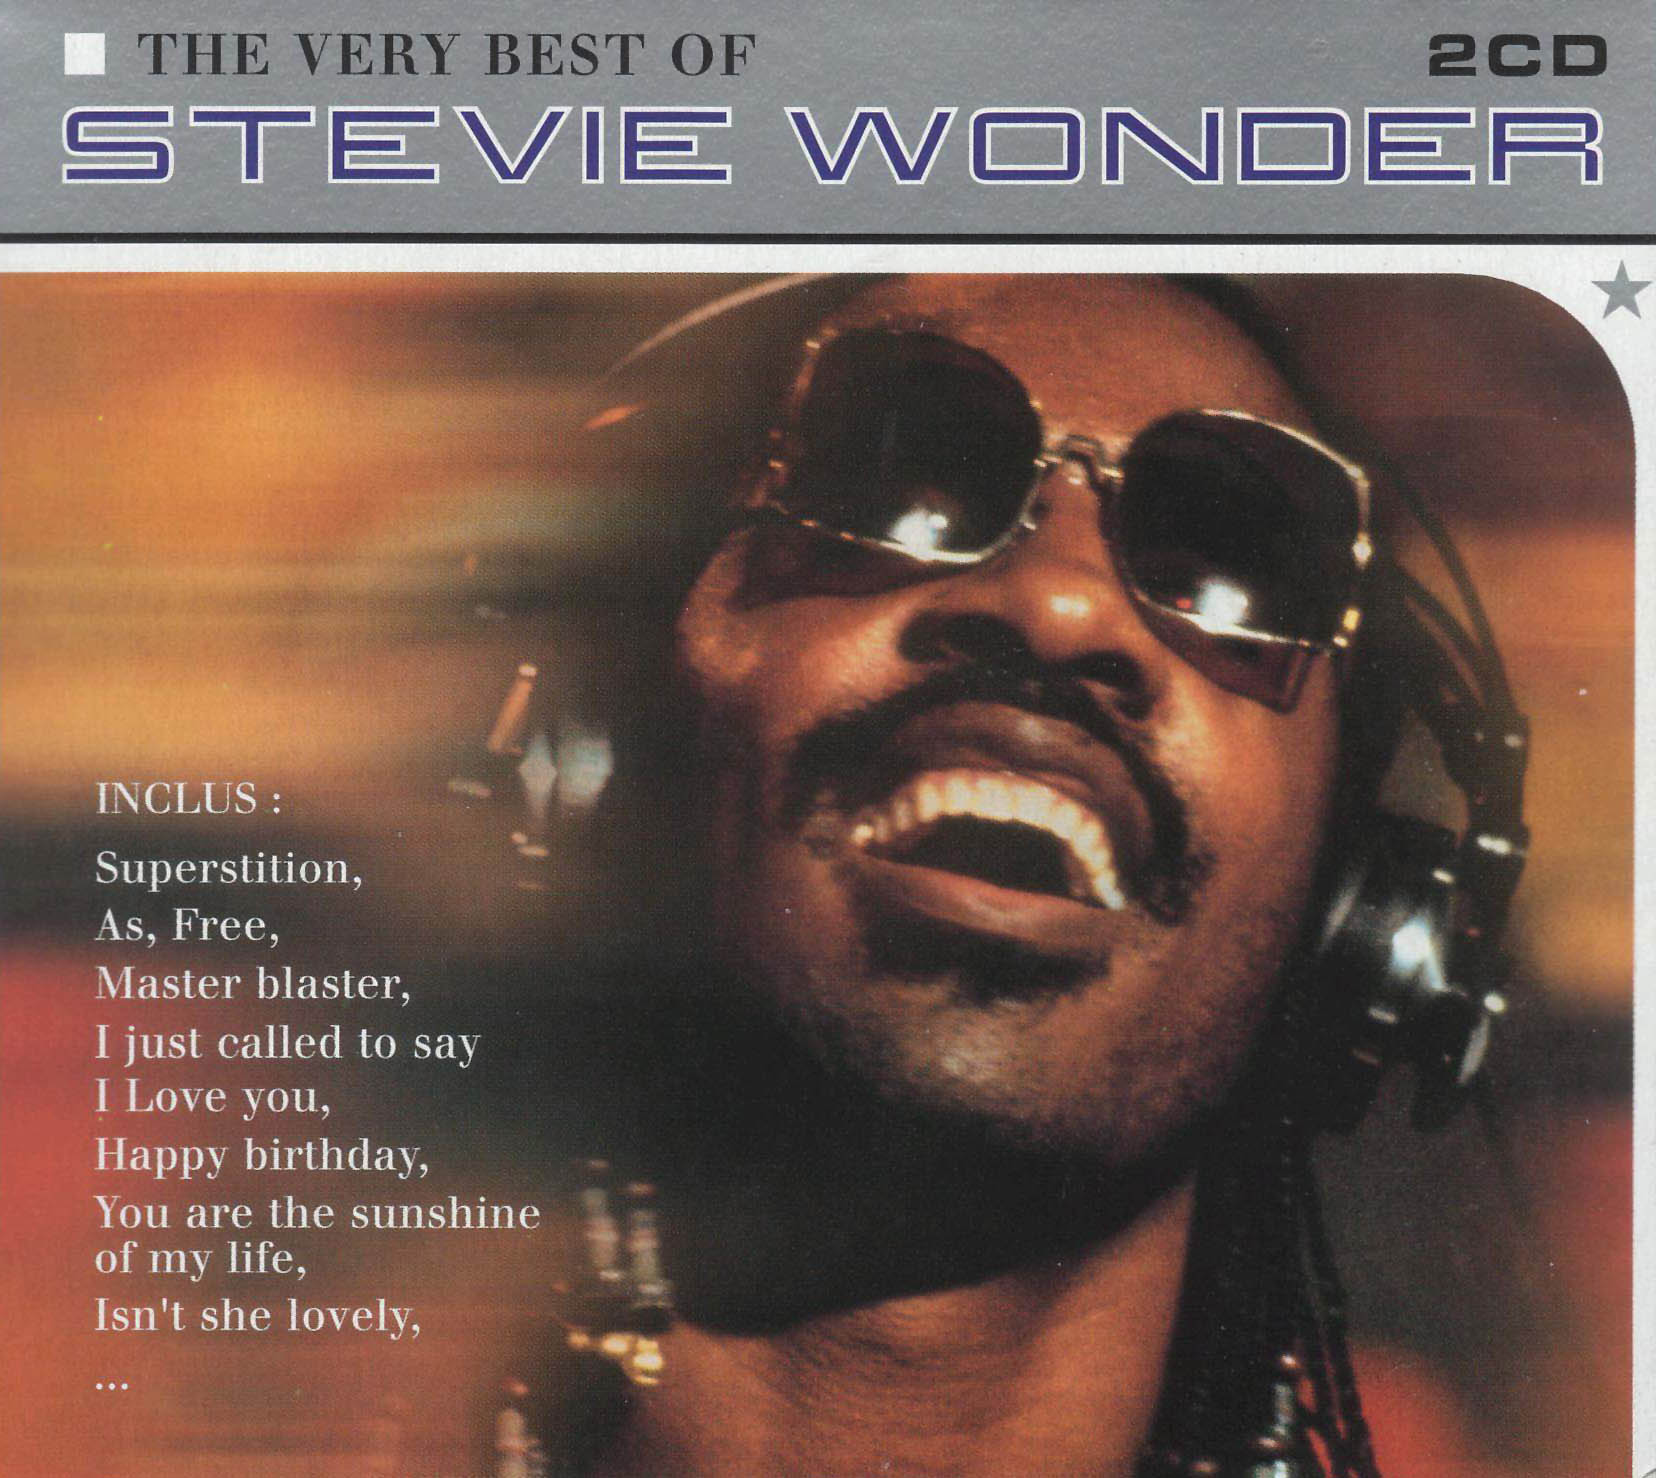 Stevie Wonder Wallpapers High Resolution And Quality Download